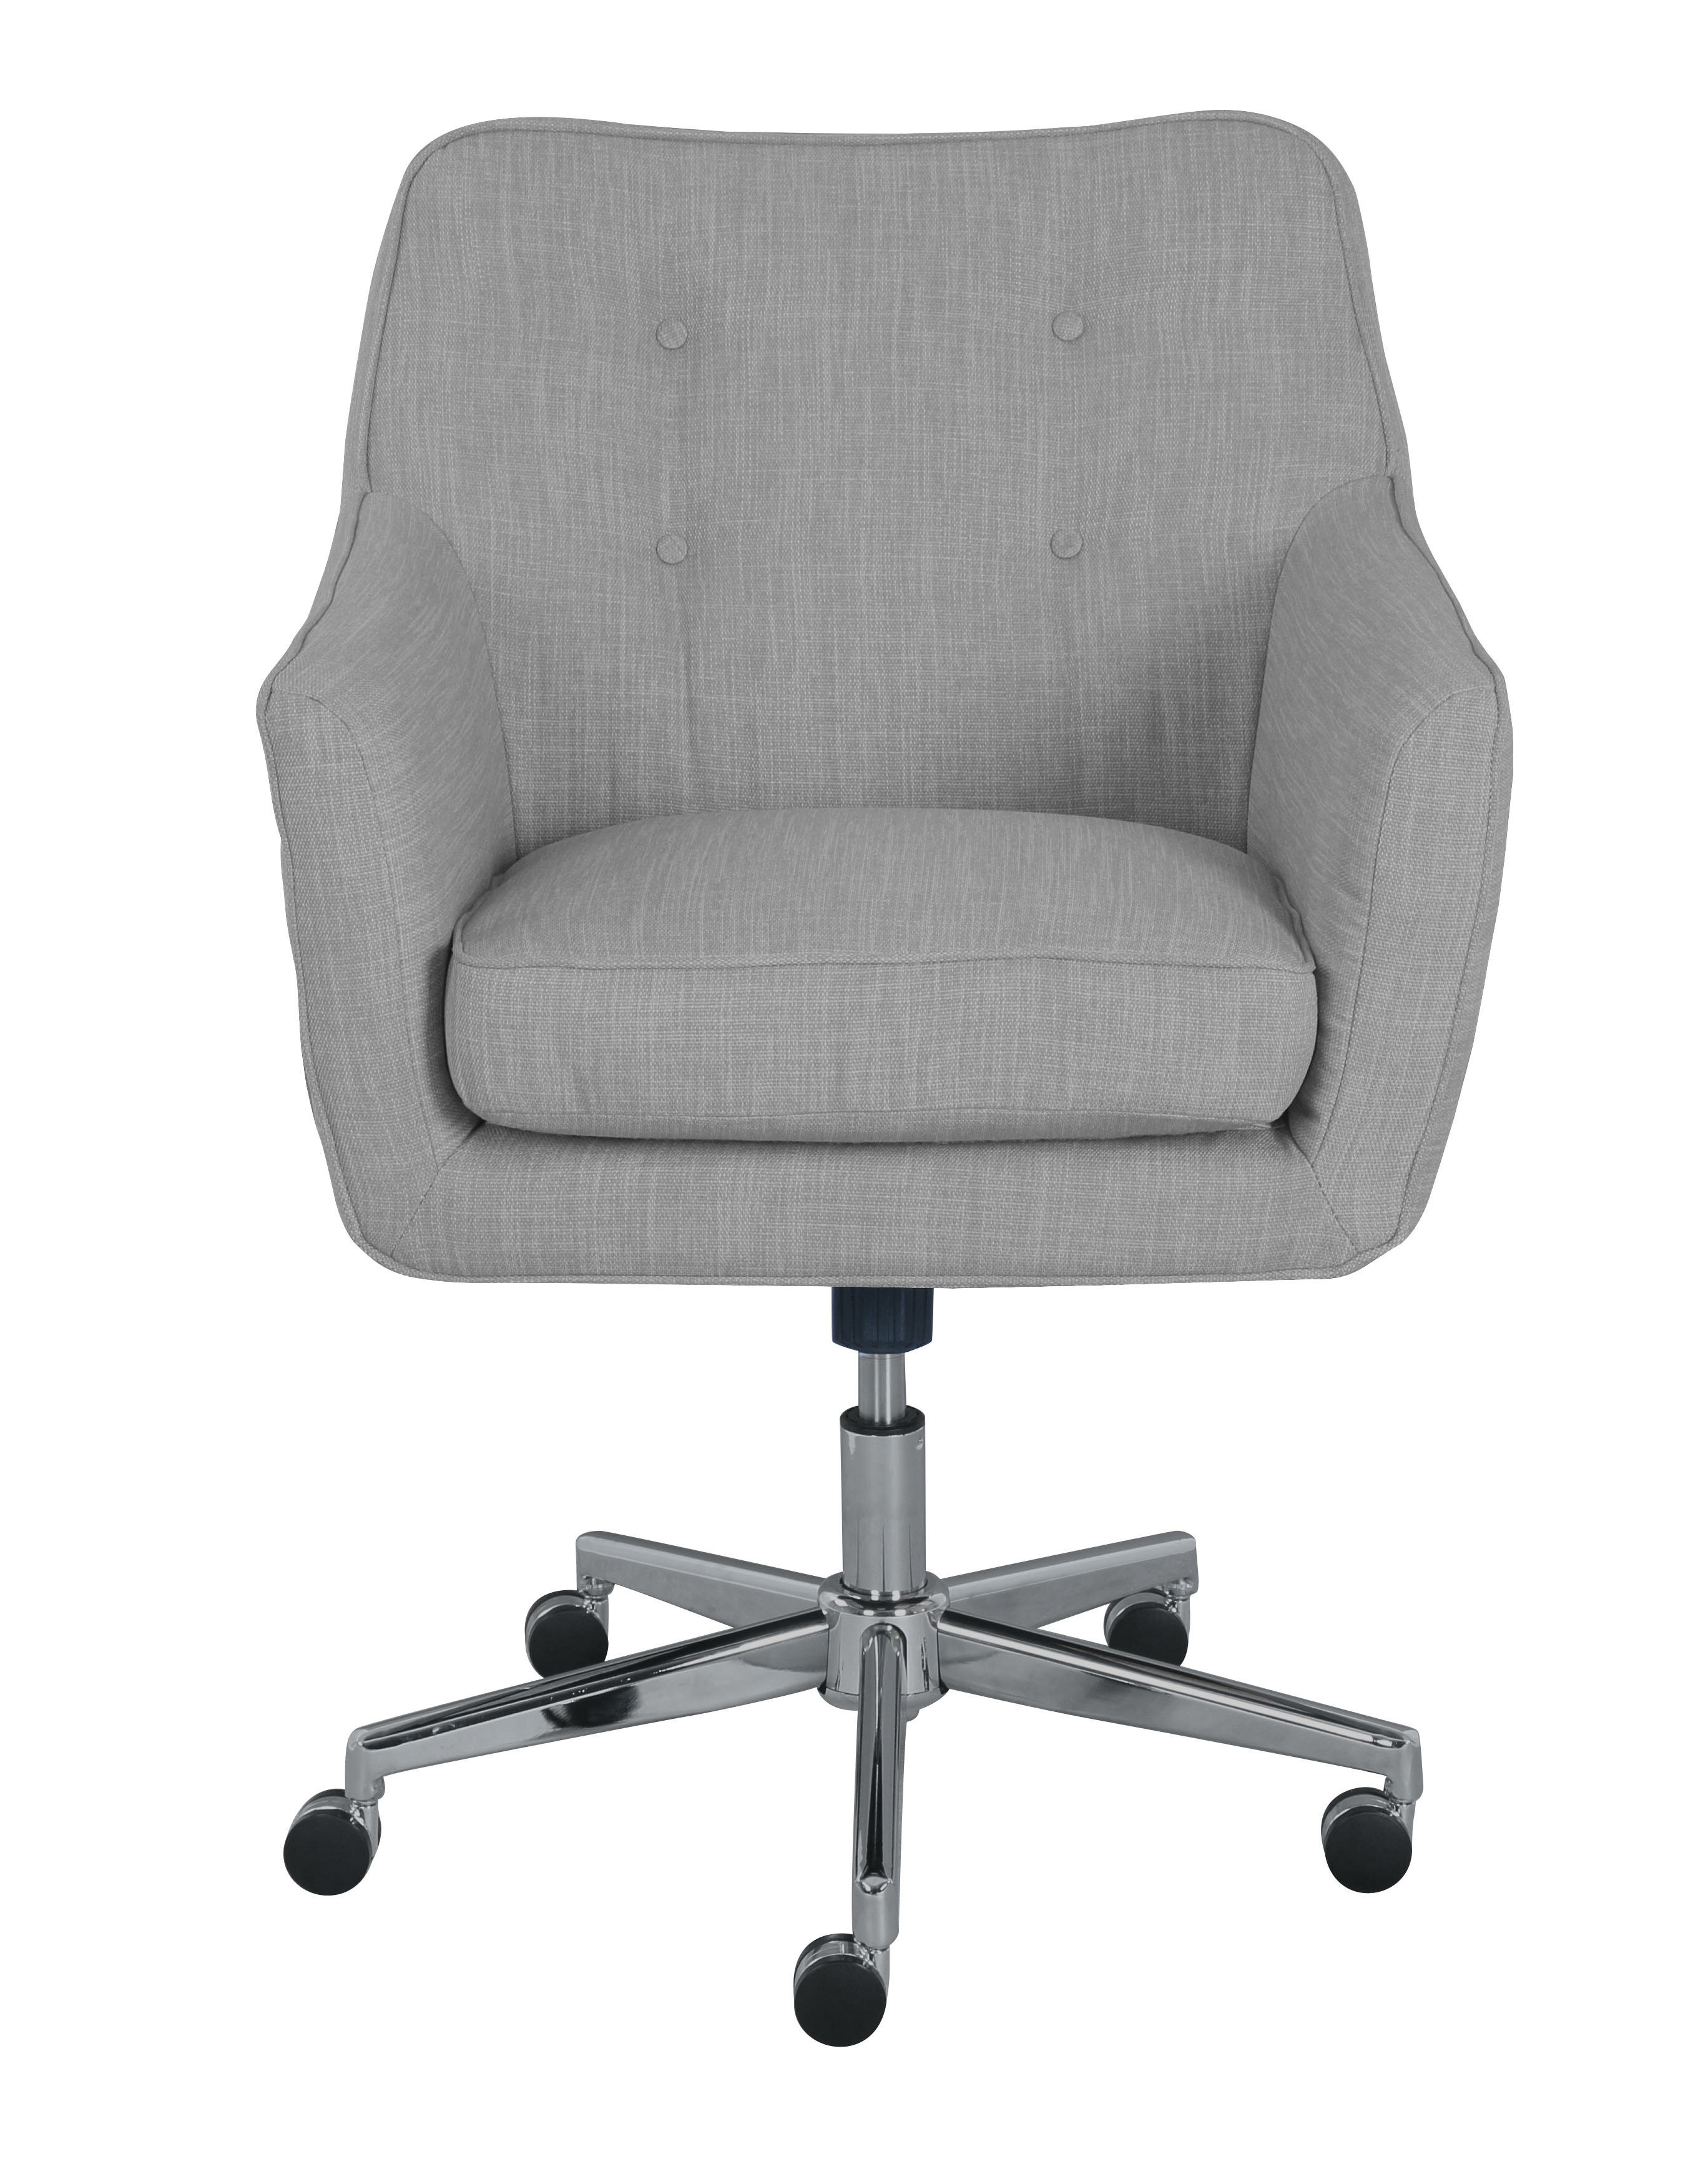 serta fice hei source chairs chair unique wid from com office image